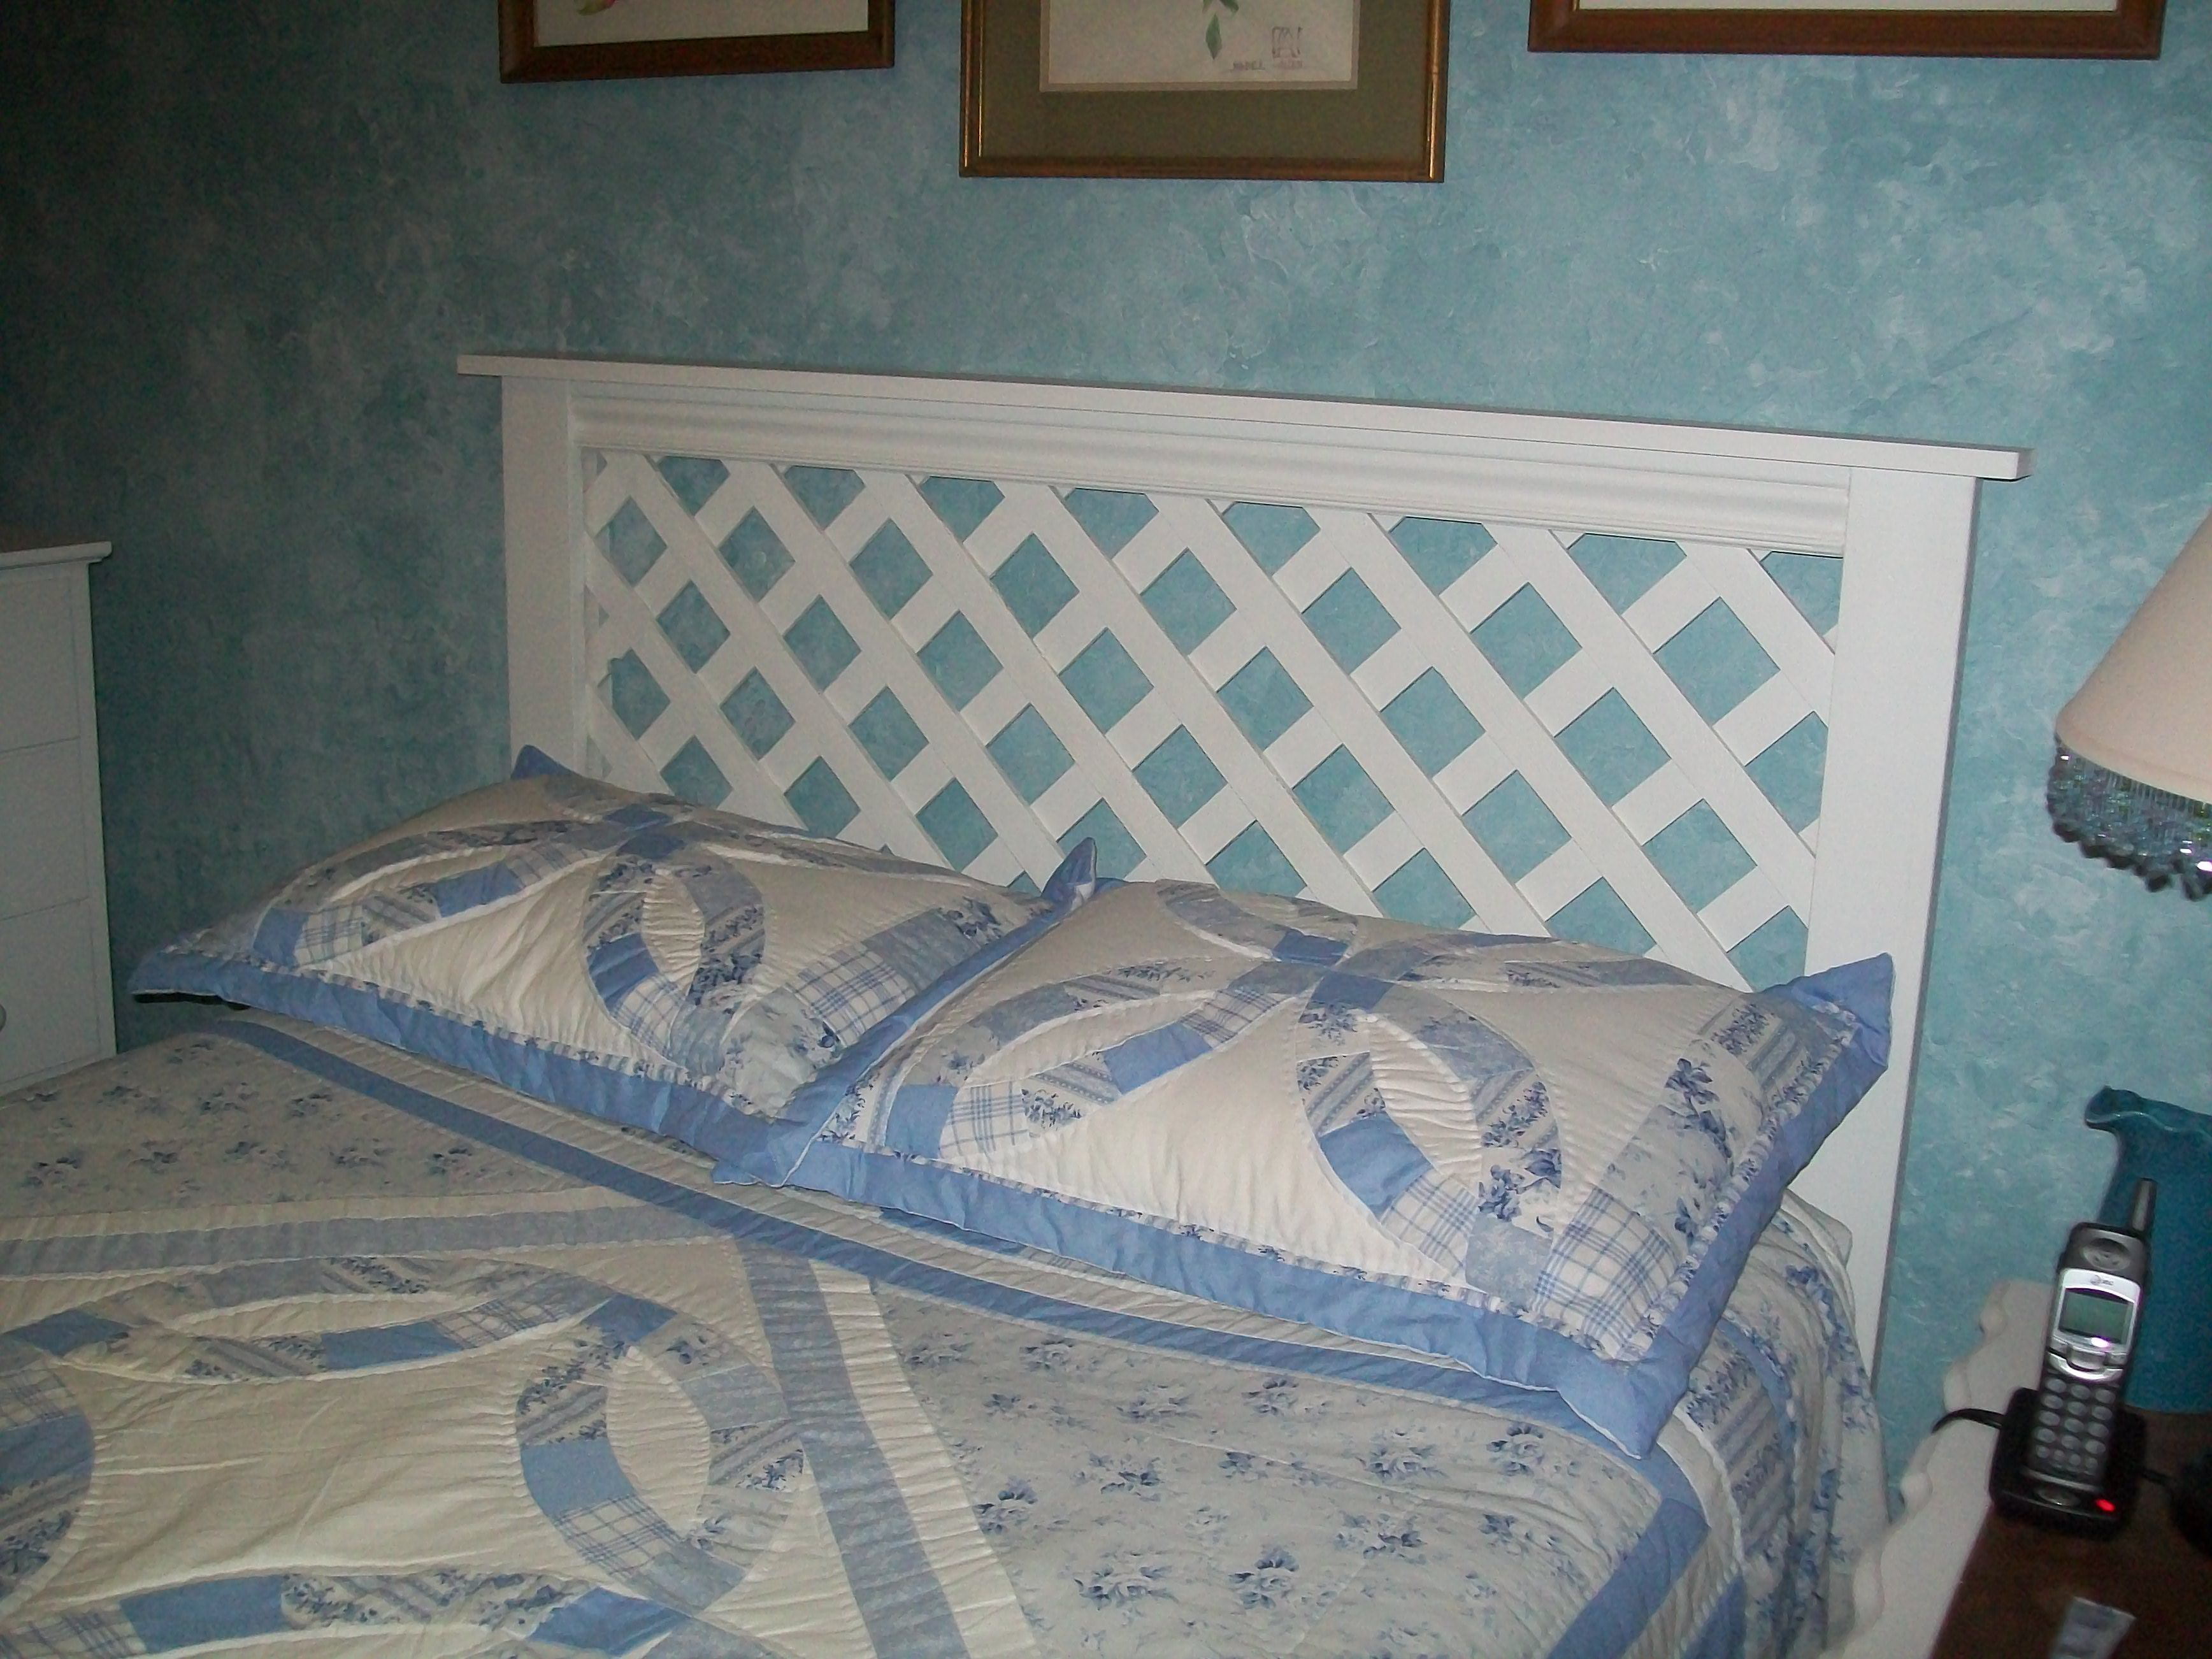 belcourt with com bed colors product roomstogokids beds lattice platform headboard pc white queen br